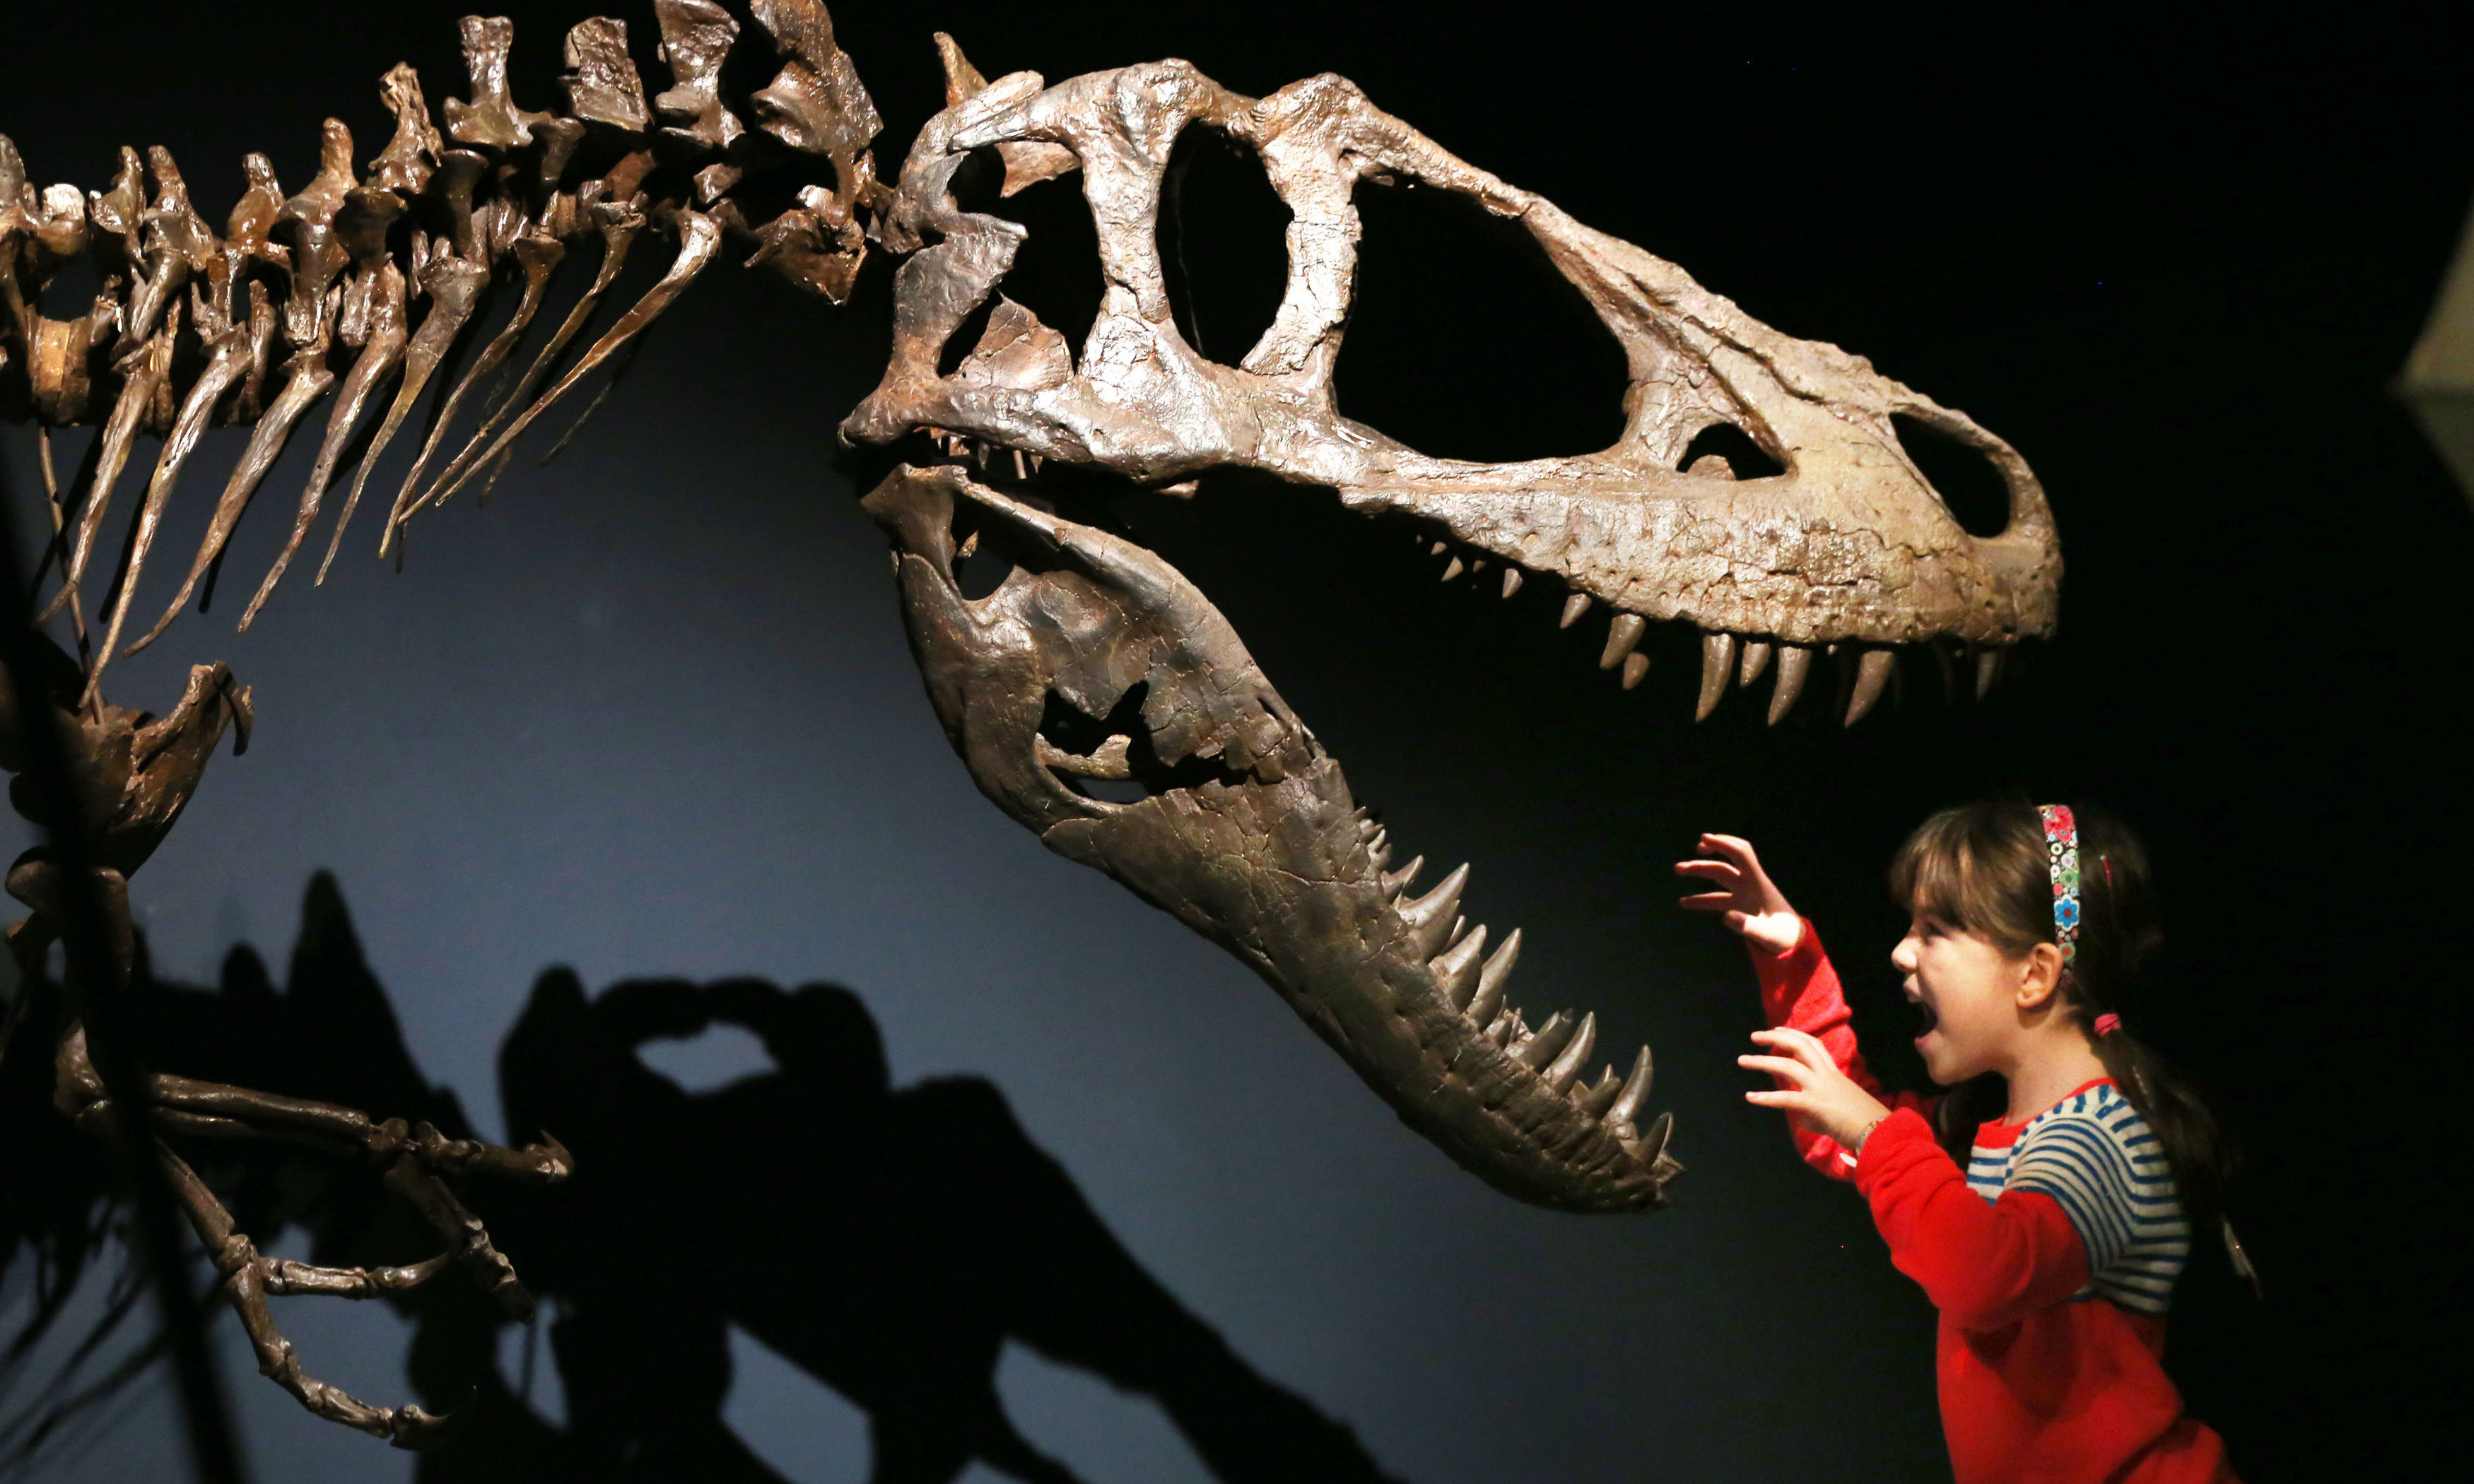 Rosa Connolly takes a close look during a preview of the Tyrannosaurs exhibition at the National Museum of Scotland, Edinburgh.